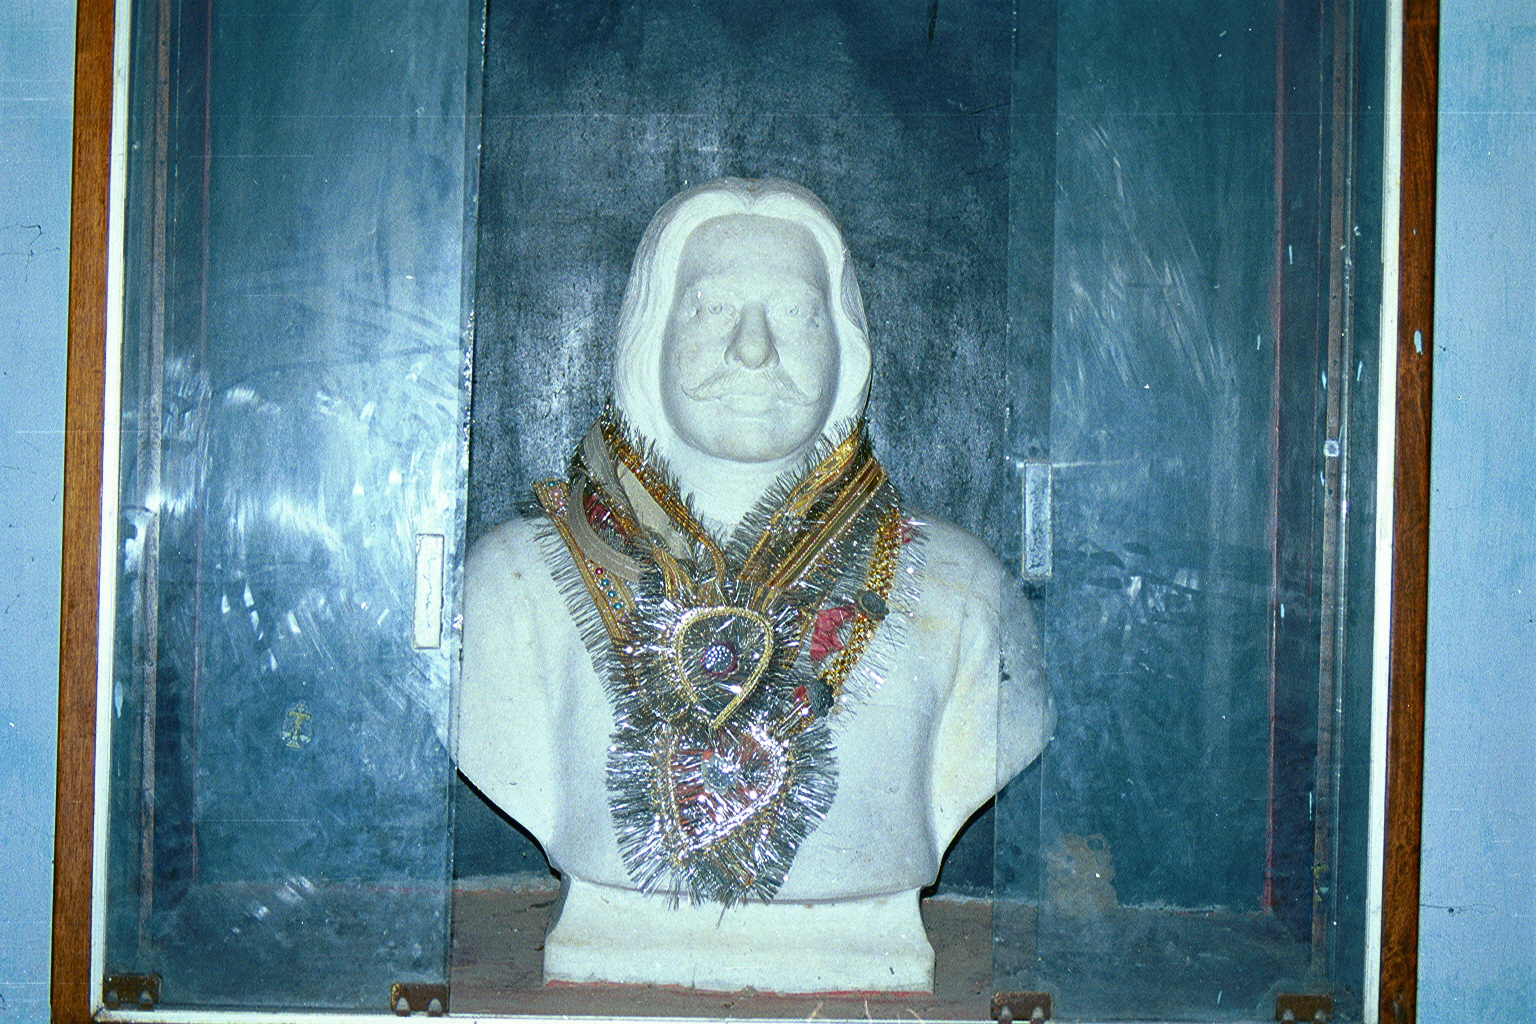 A marble bust (statue) of my Late Great Grandfather Mr J. P. Chaturvedi, ( Congress Party member ) at the 'Mallehpur' railway station. The entire station, including the railway yard was built on our property in the 1920's at 'Mallehpur', Monghyr(District), BIHAR, India